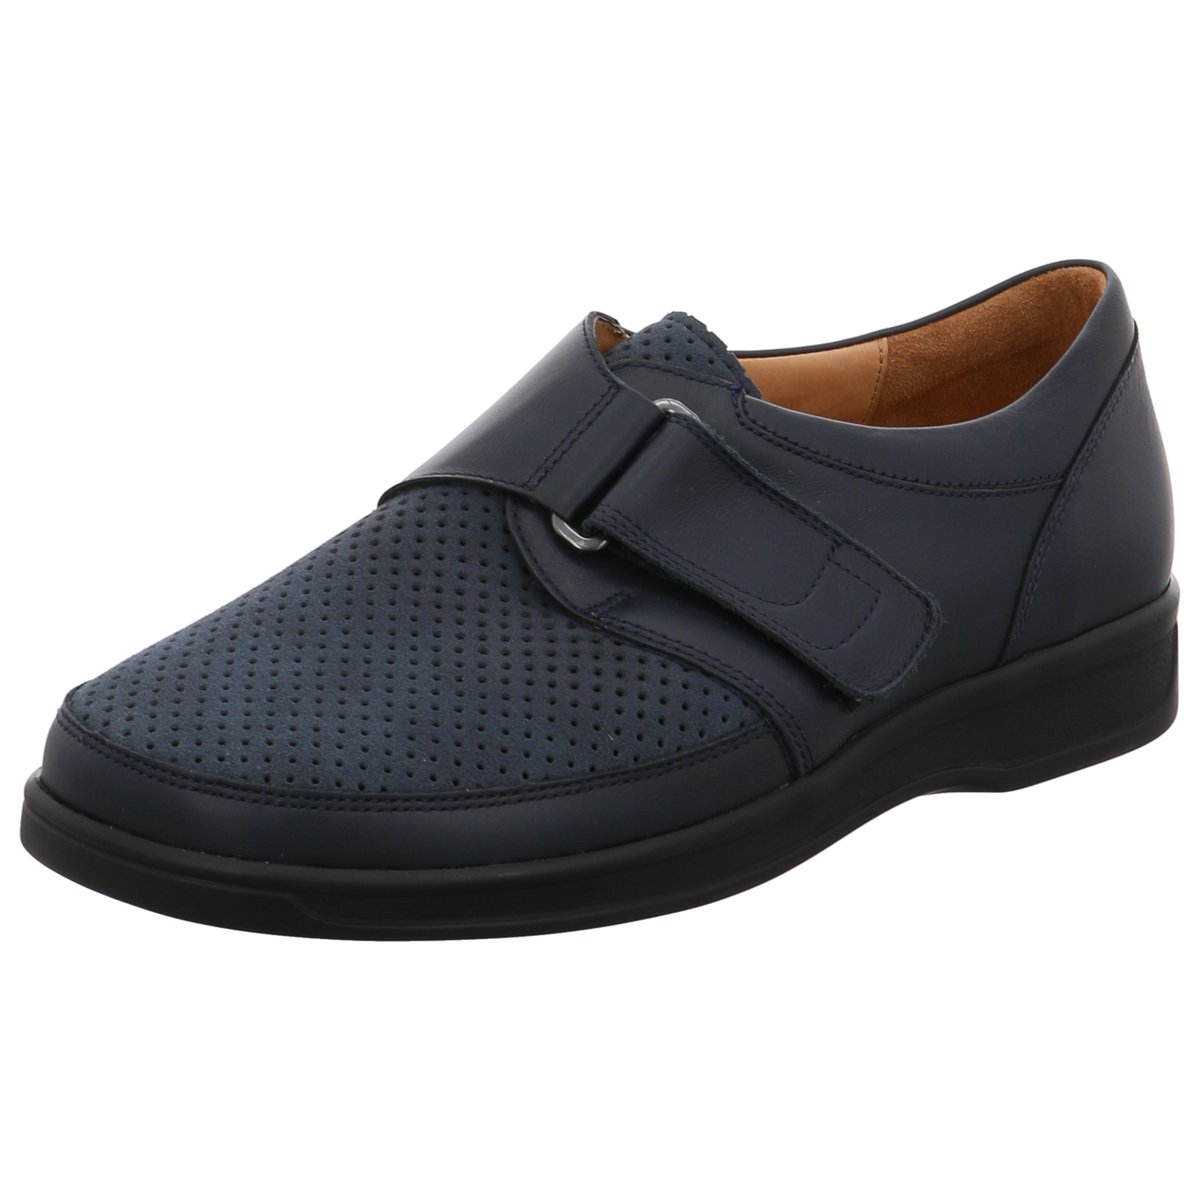 Ganter Damen Slipper 32057323000 blau 251054   | Lebensecht